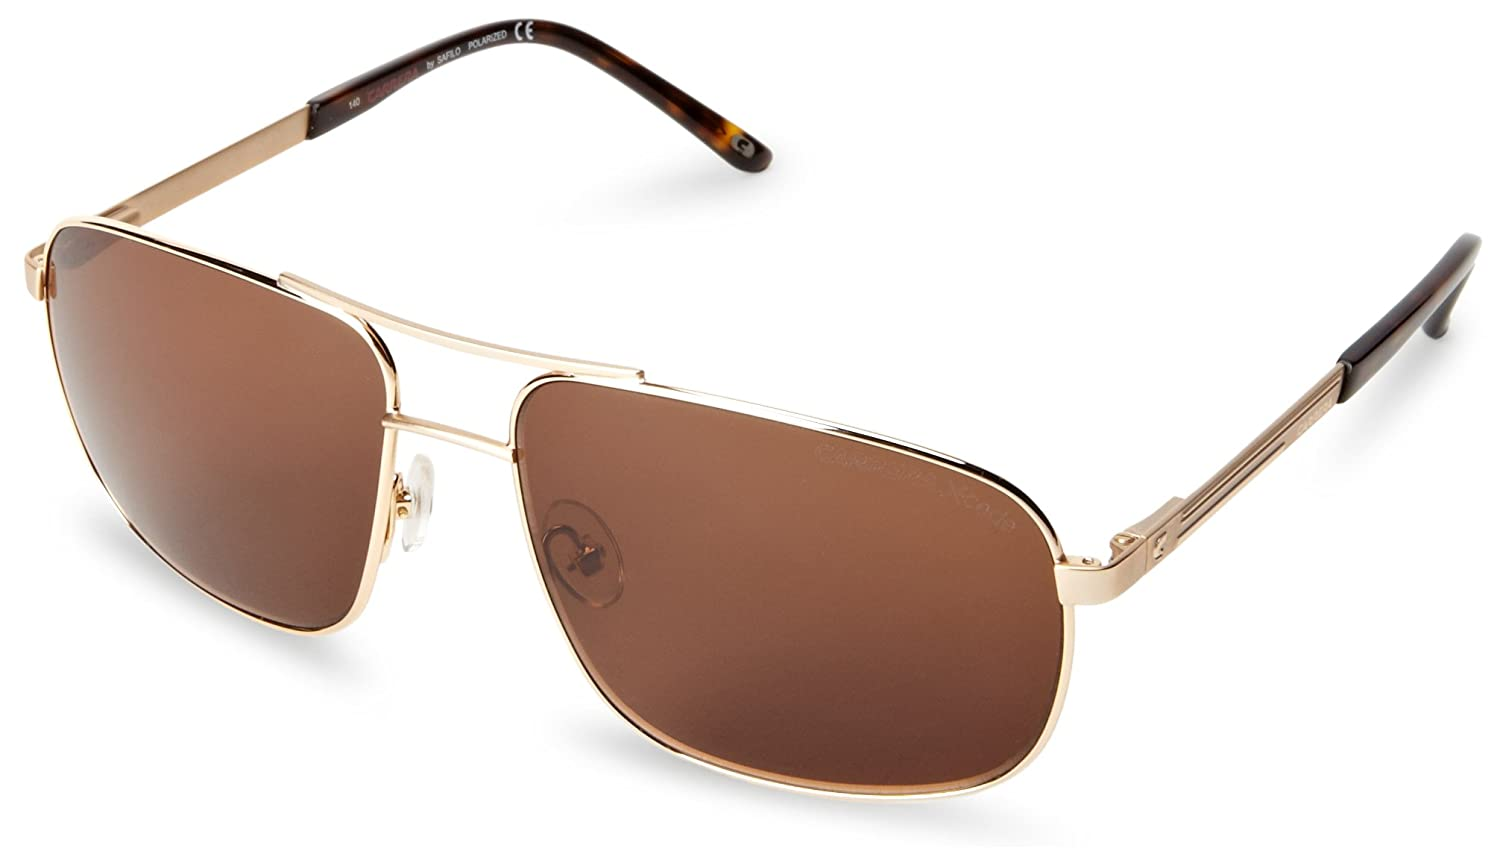 57c9dffab62a CARRERA XCEDE Sunglasses 7018/S J5GP Gold 59MM: Amazon.co.uk: Clothing